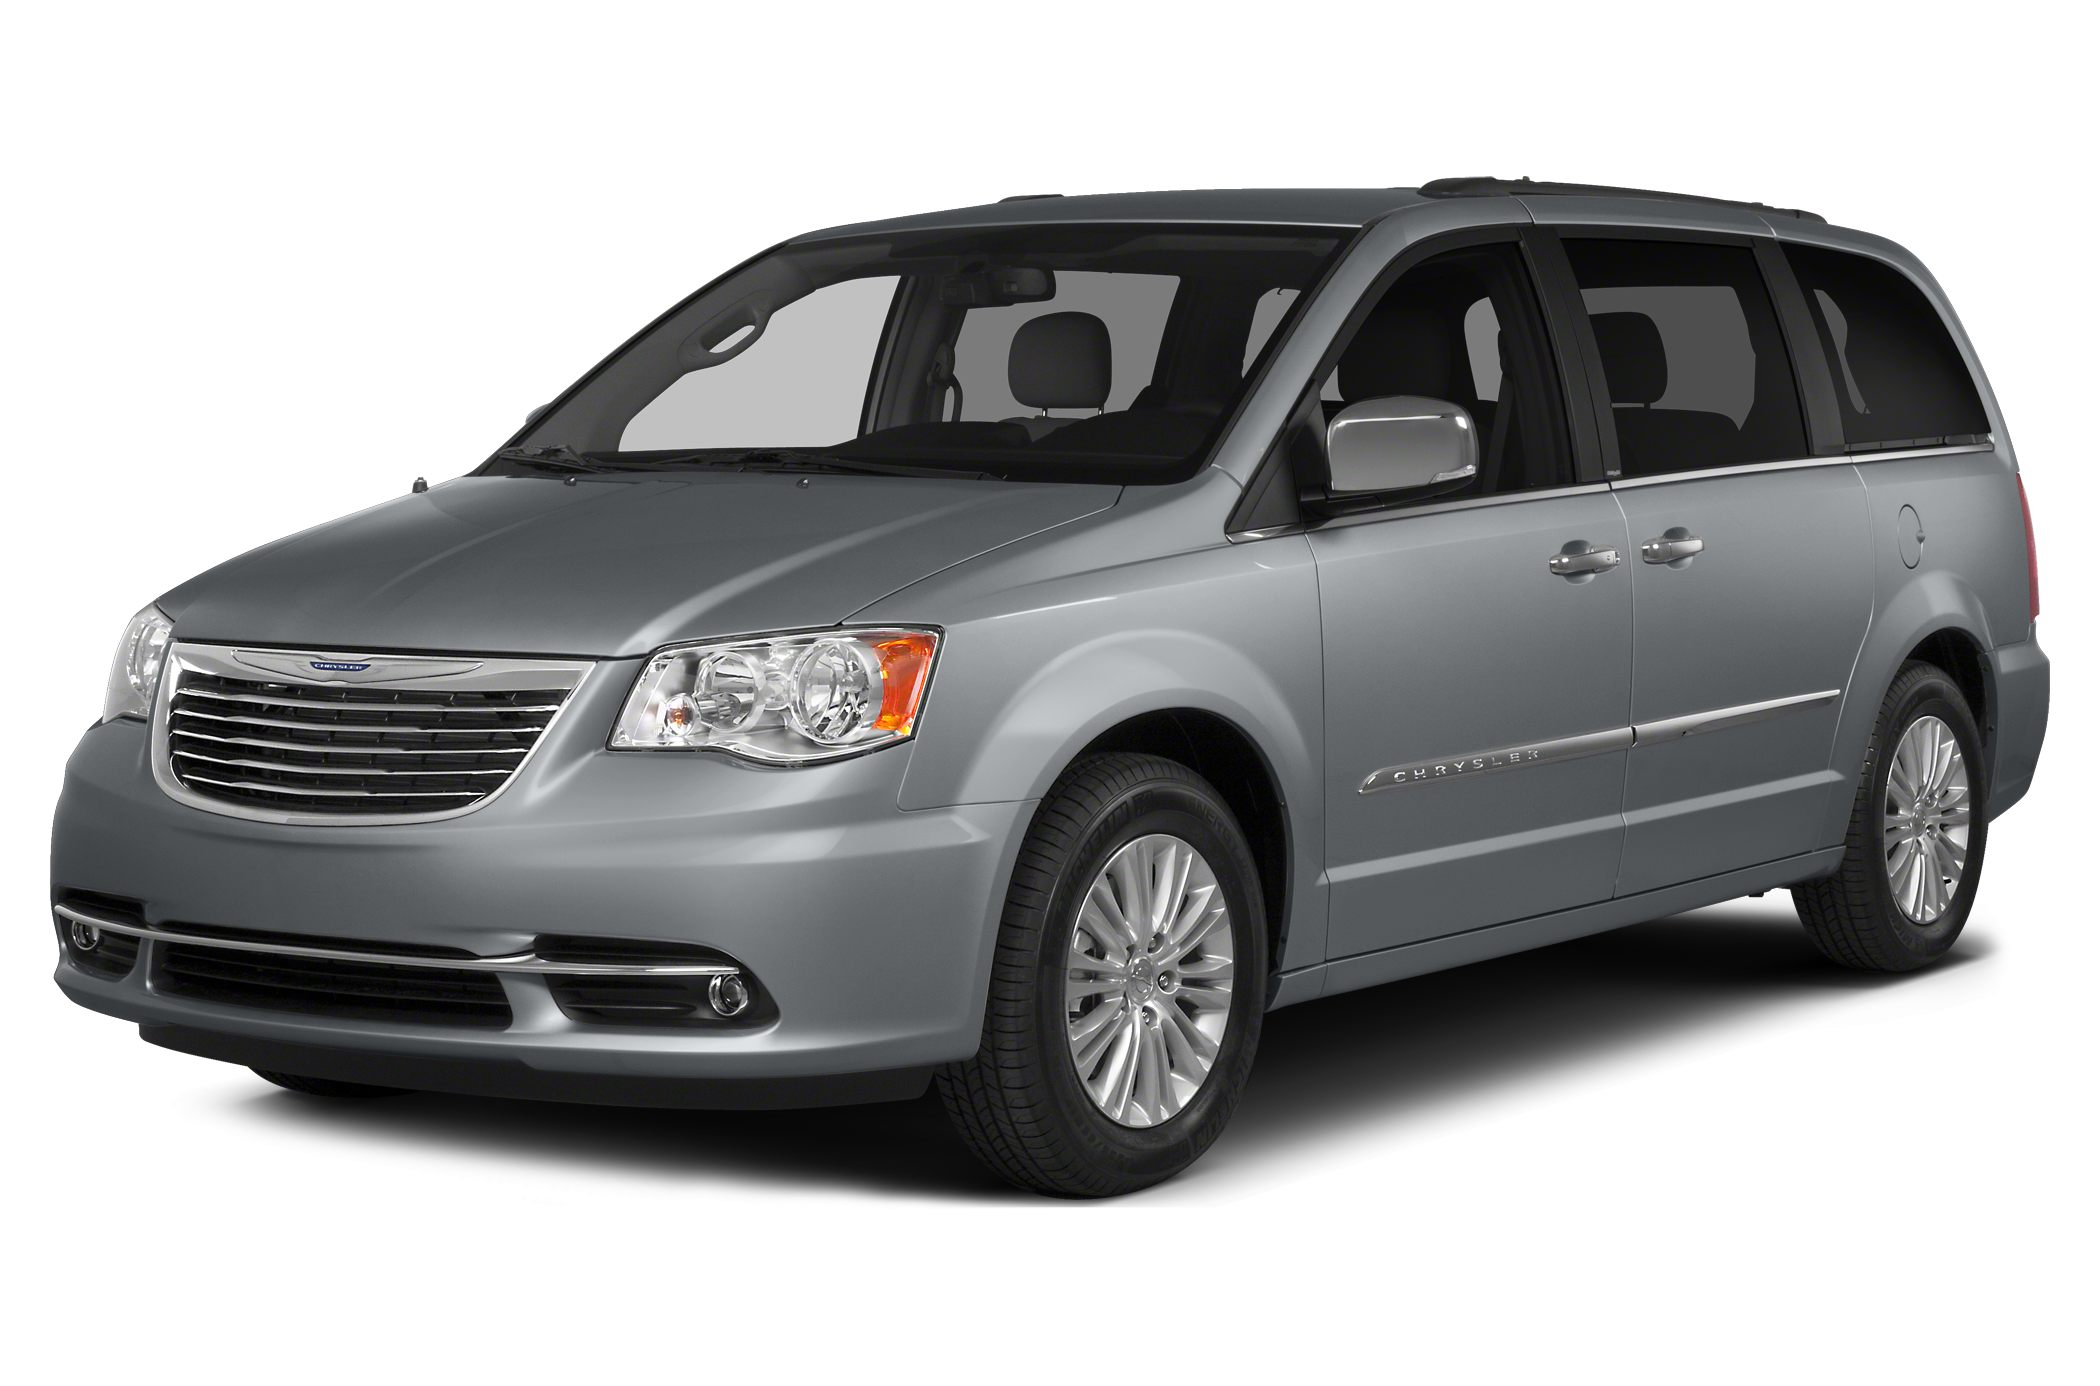 2015 Chrysler Town & Country Touring-L Minivan for sale in West Monroe for $40,455 with 3 miles.